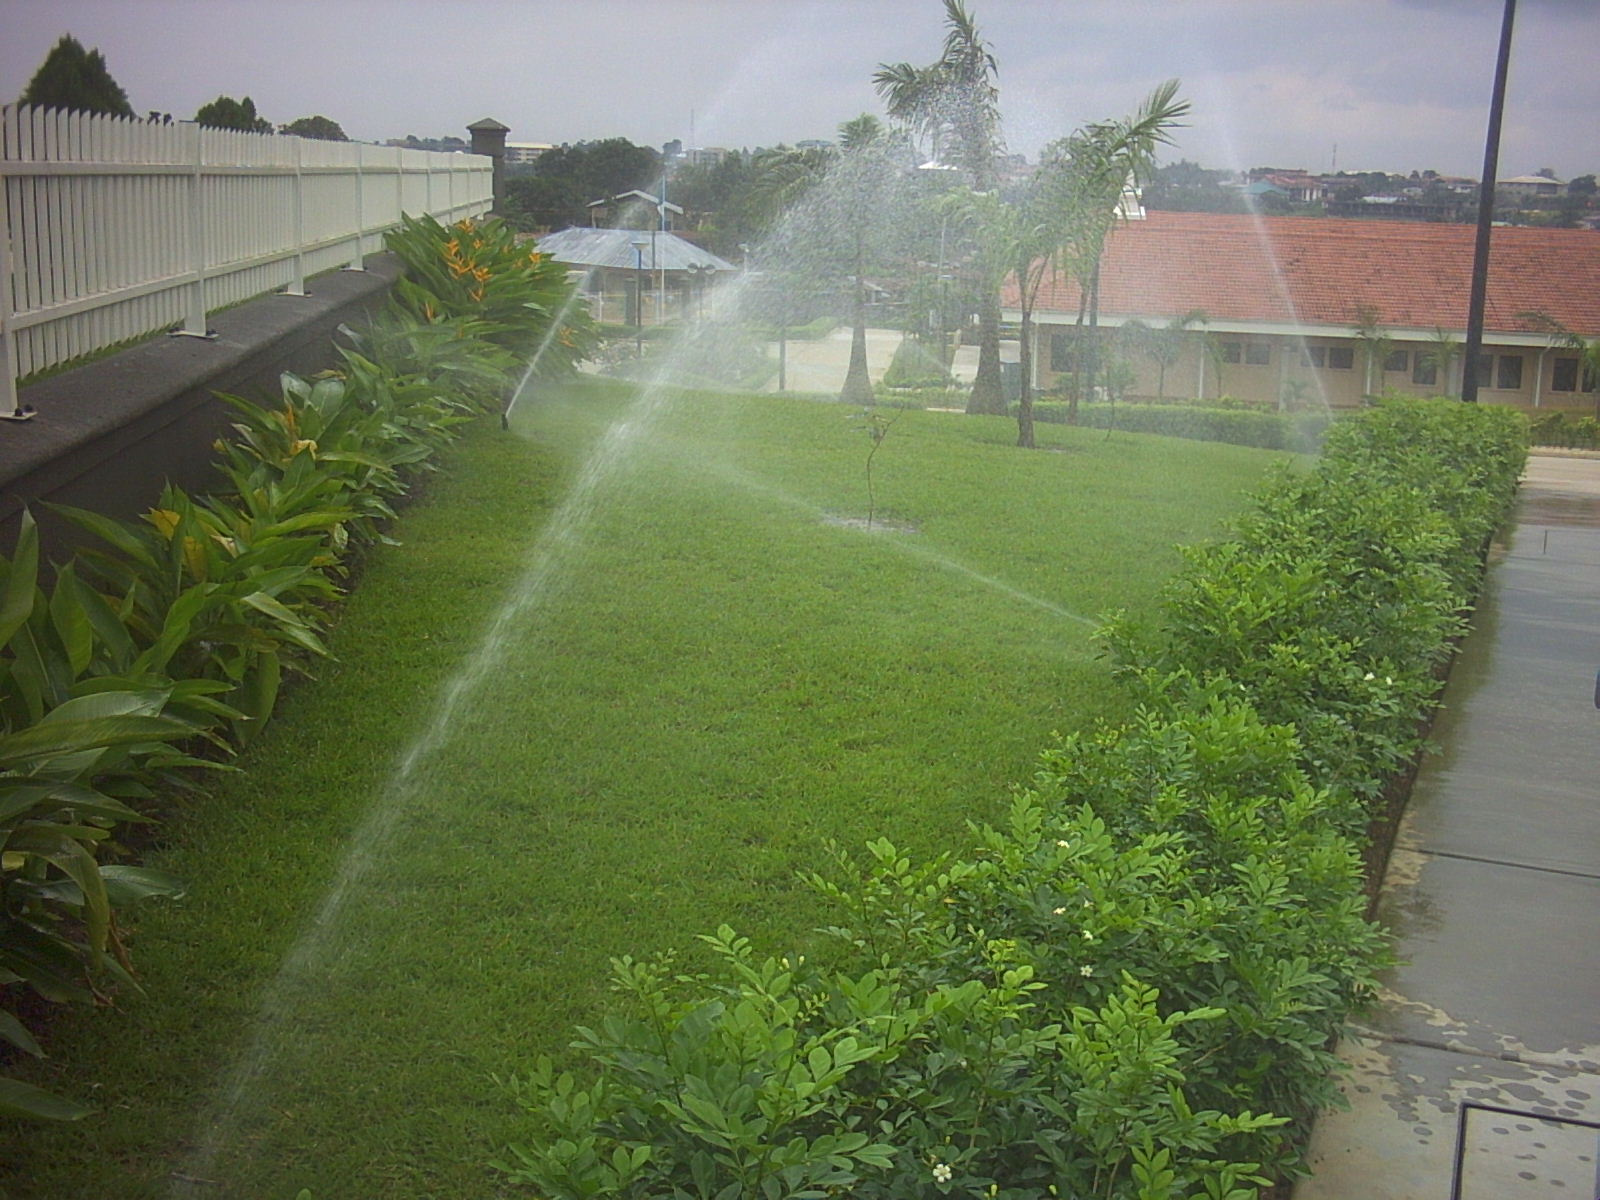 Plants being watered with an irrigation system